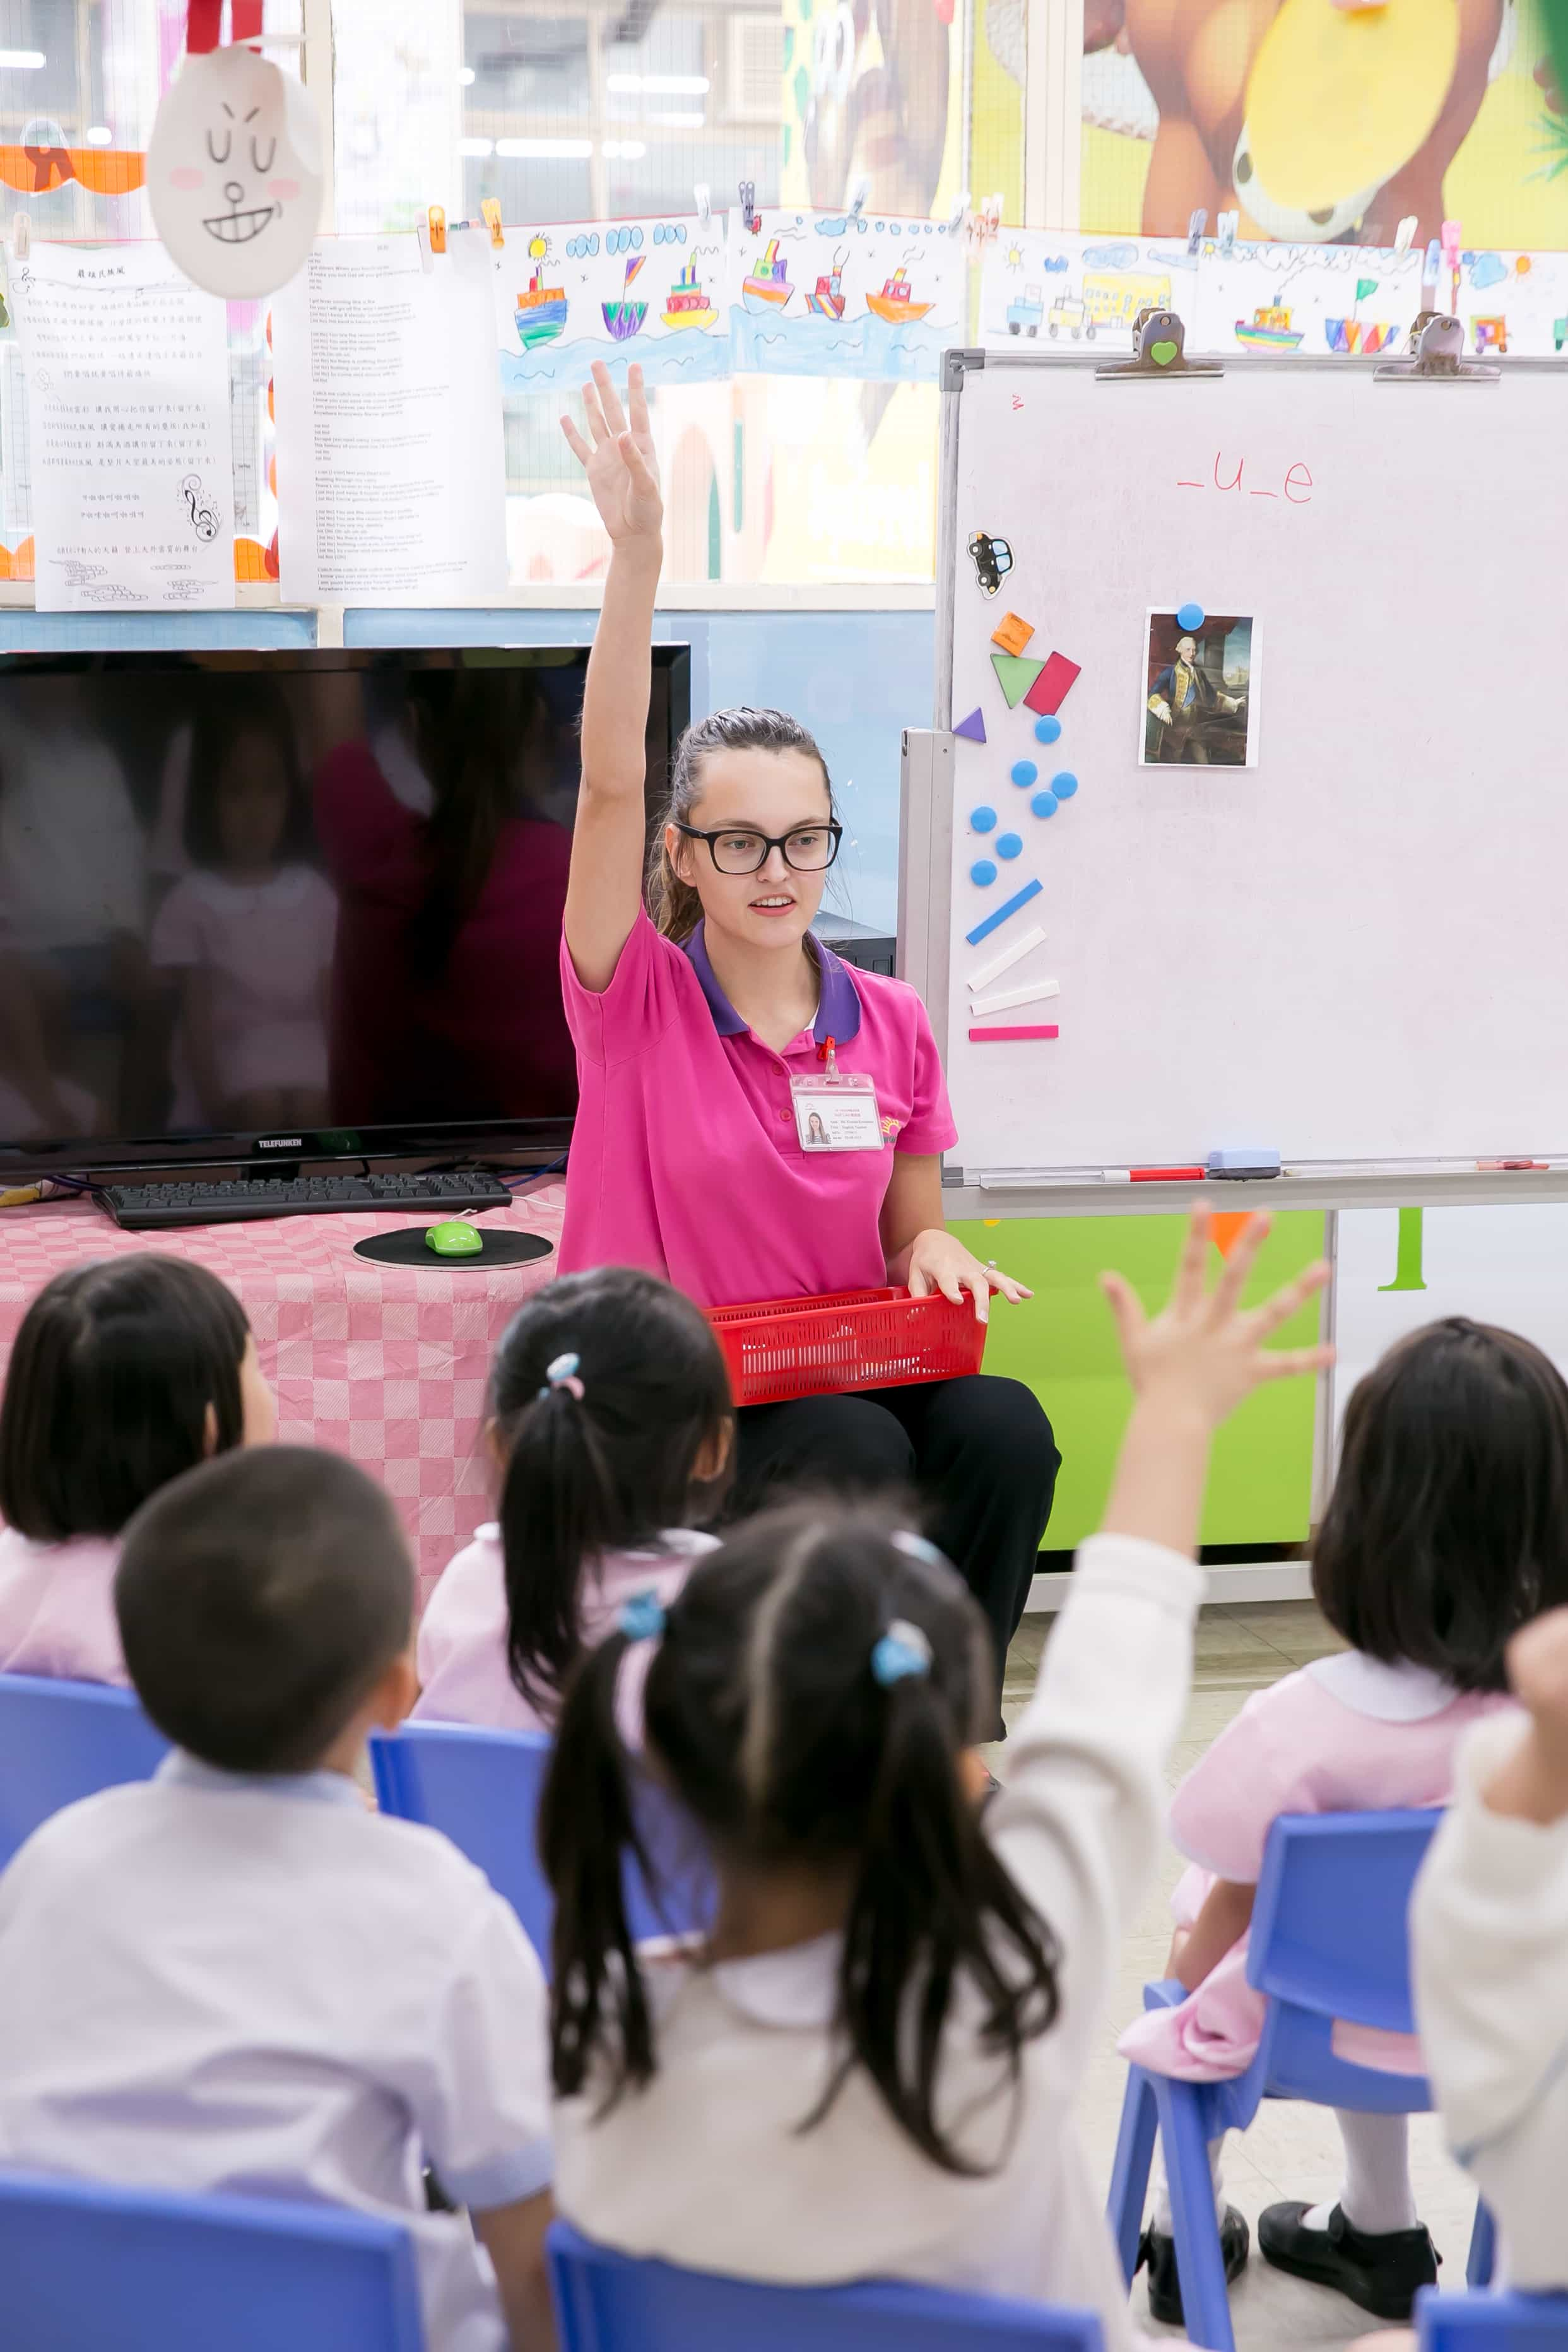 a young TEFL teacher is encouraging children to work at the lesson